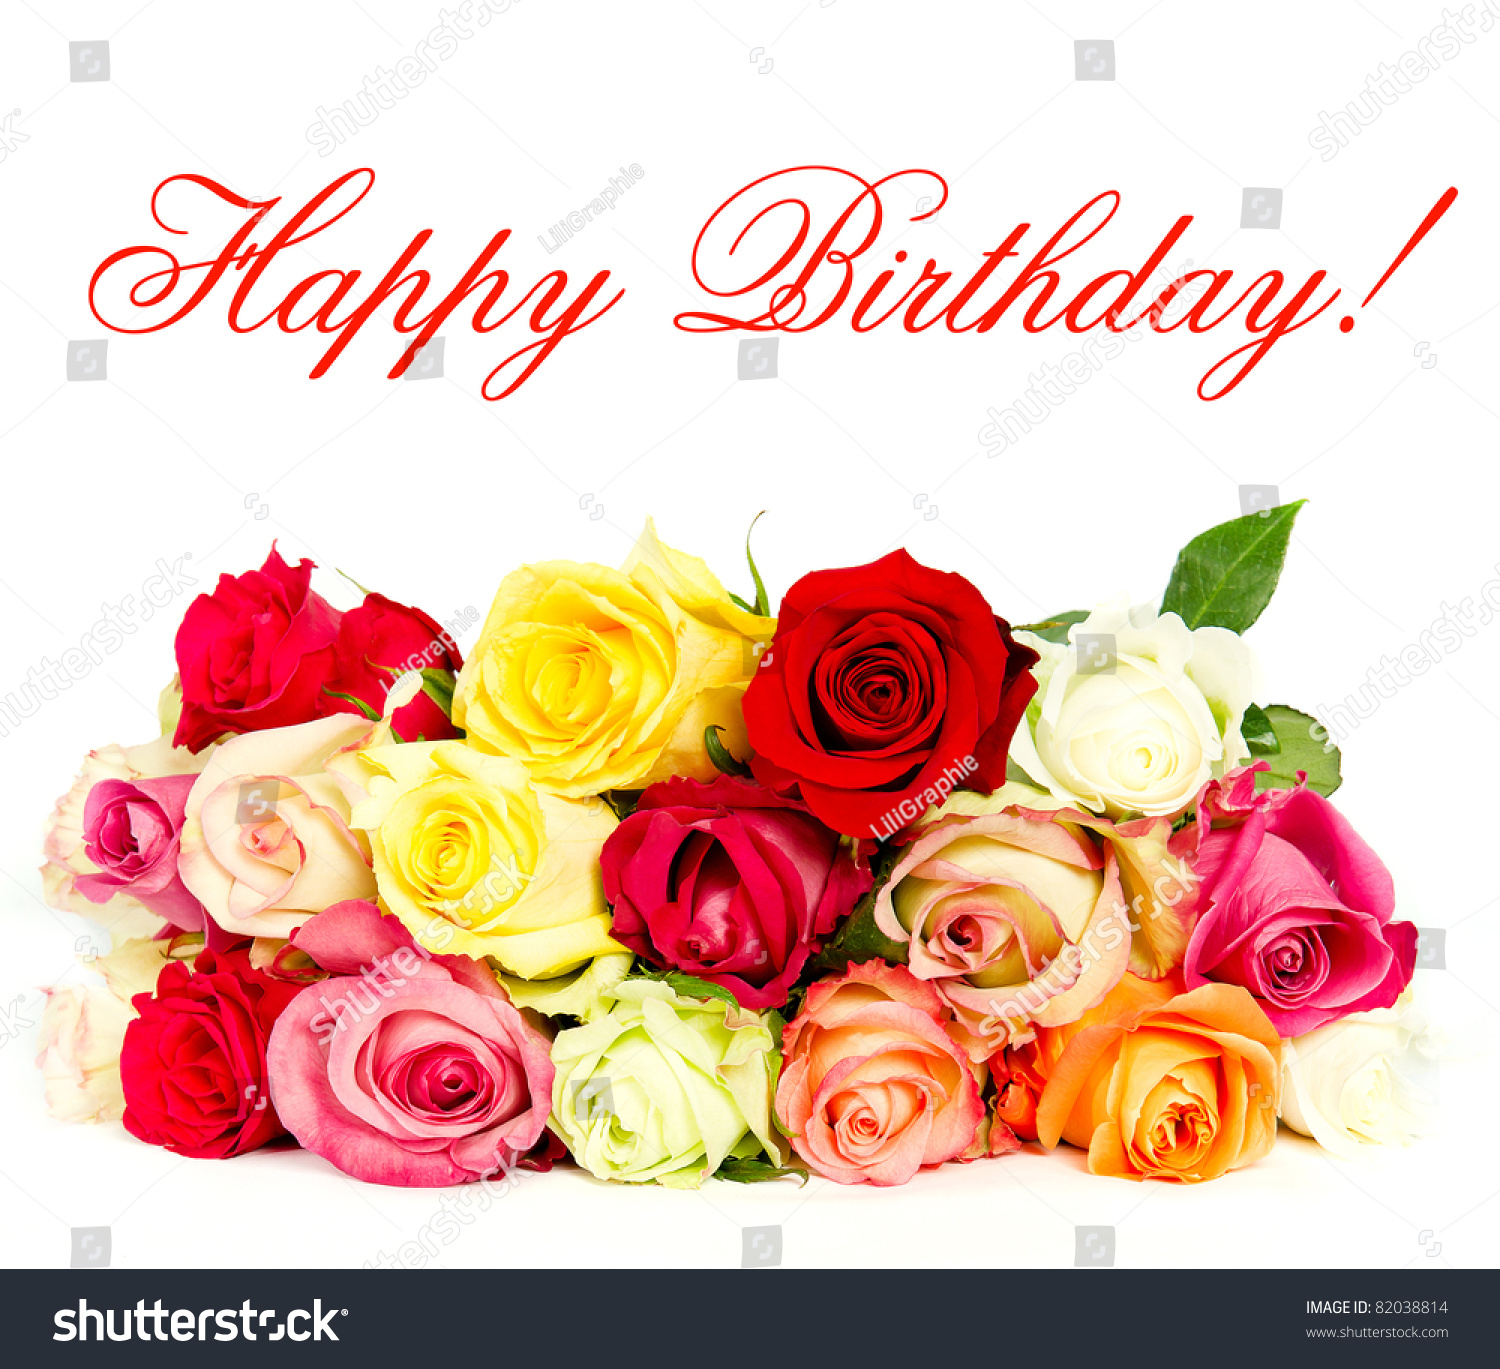 Happy birthday colorful roses beautiful flower stock photo royalty happy birthday colorful roses beautiful flower bouquet card concept izmirmasajfo